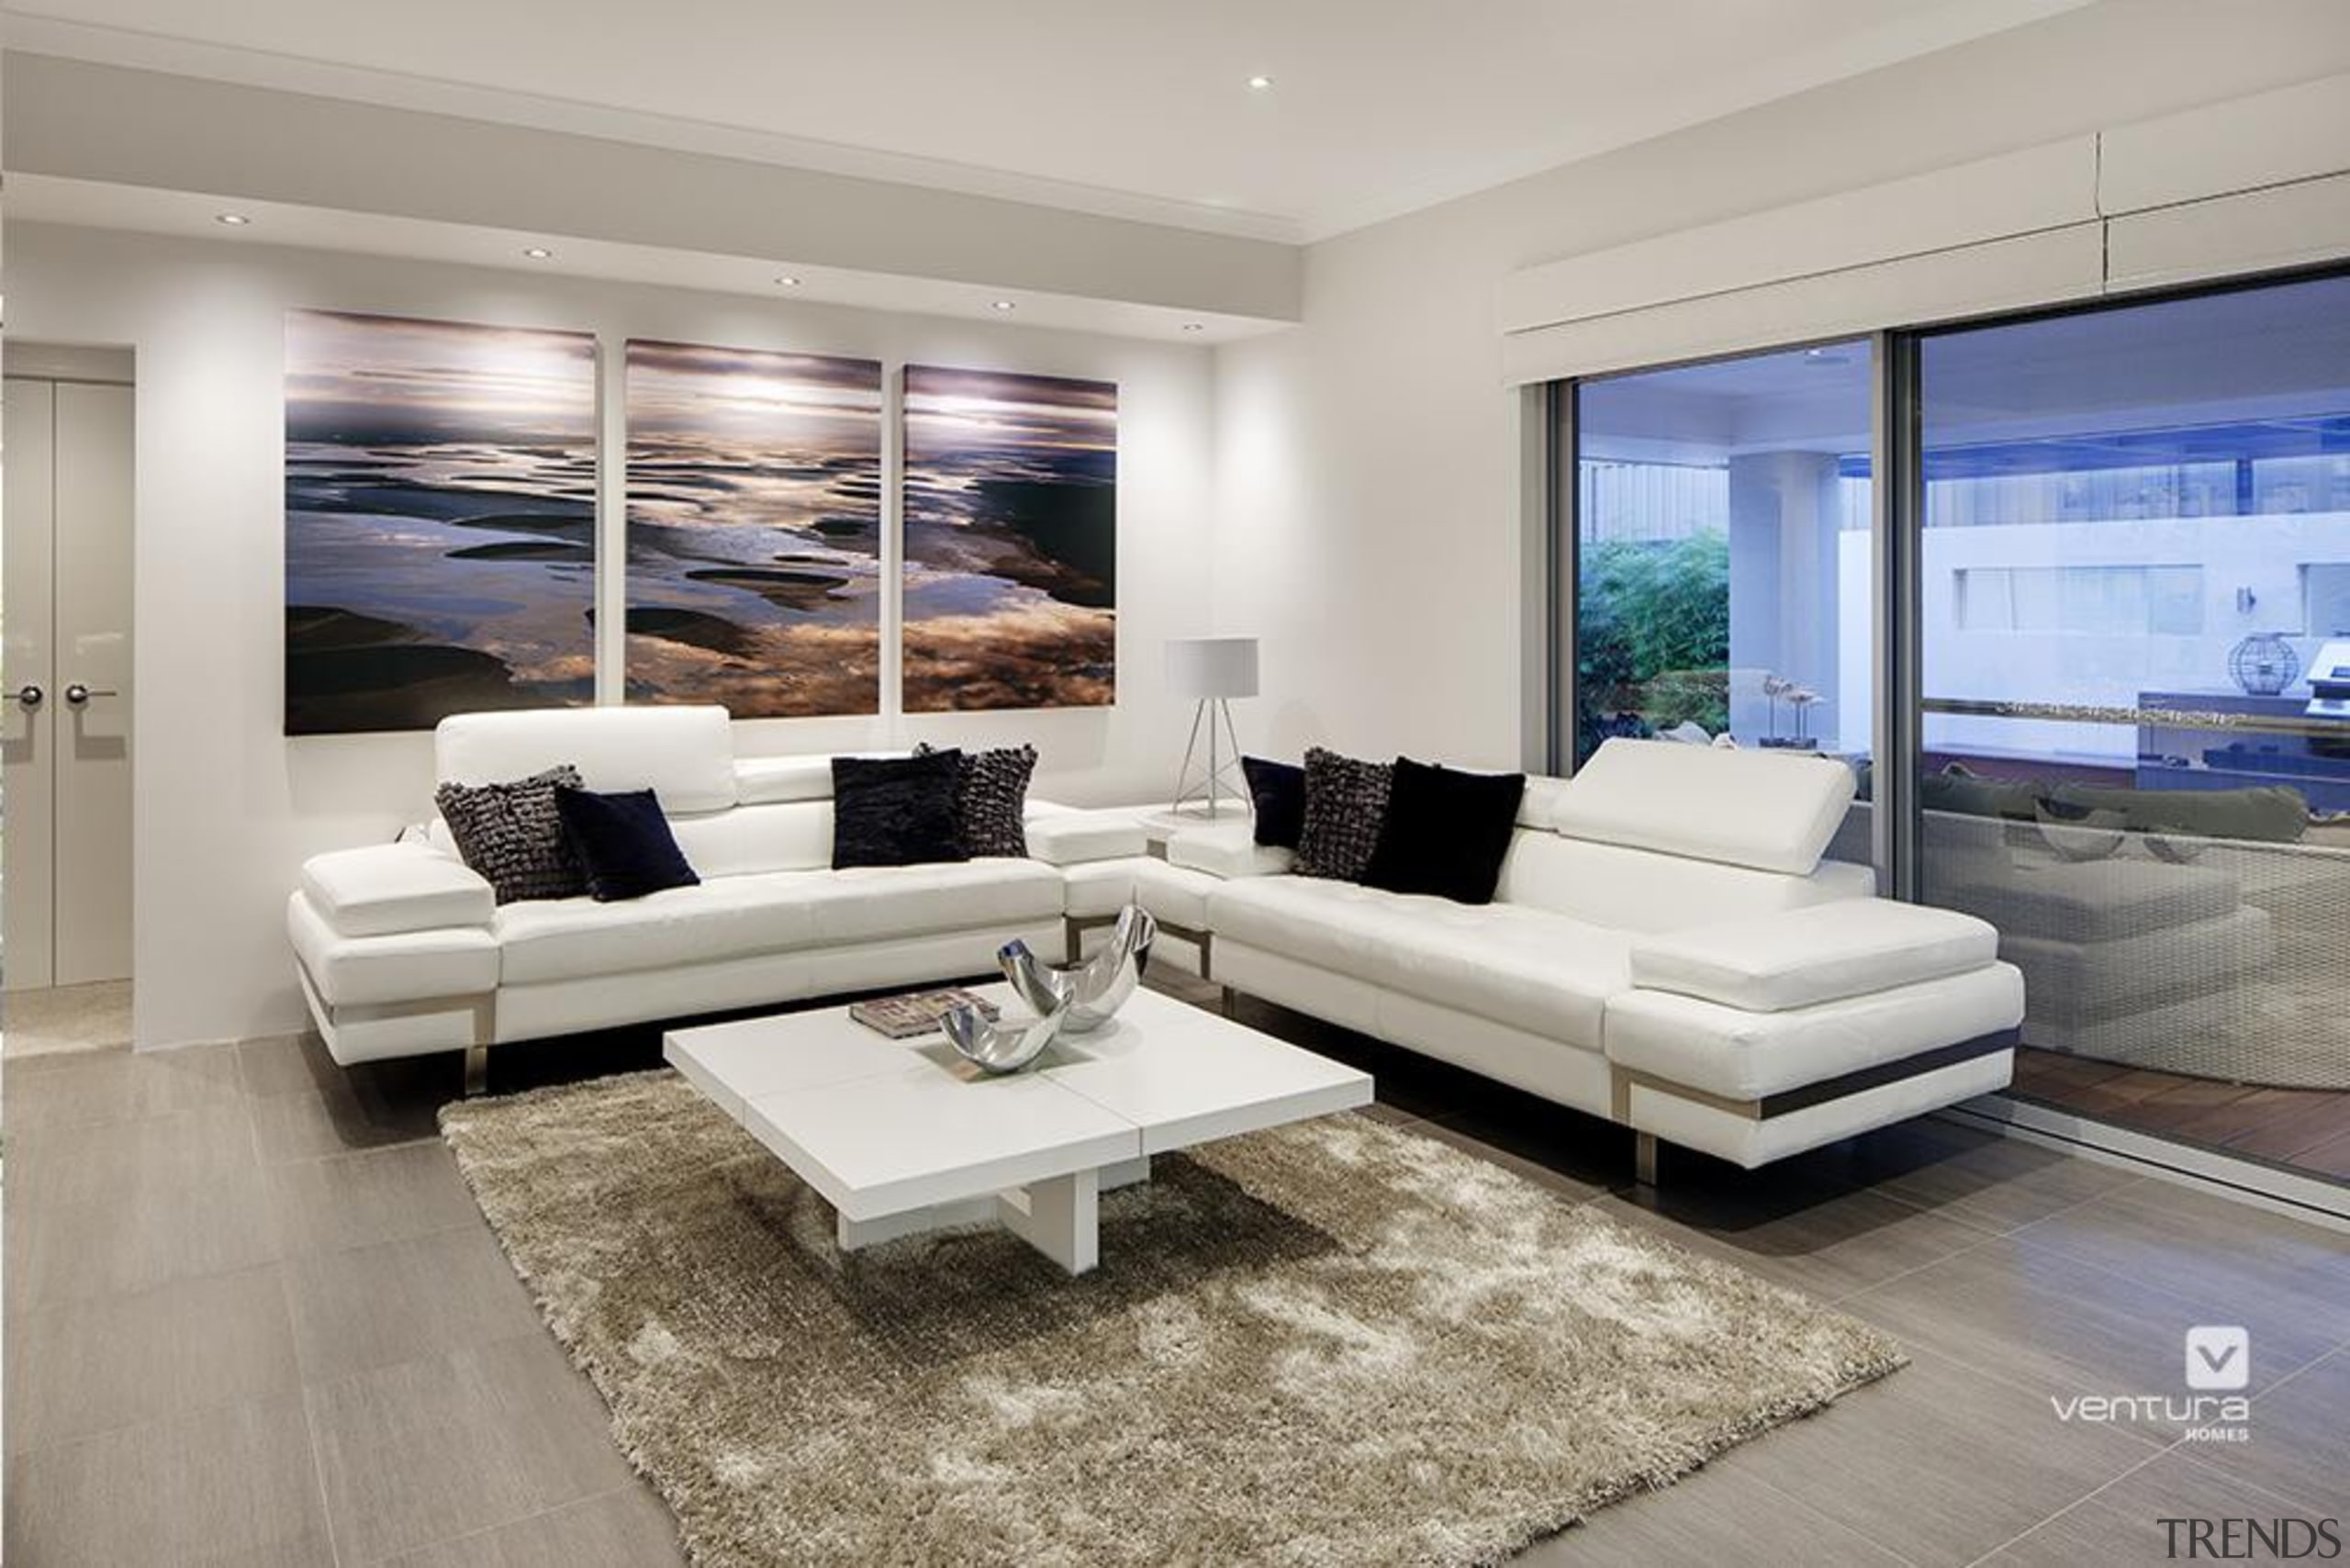 Living Room Design. - The Temptation Display Home couch, floor, furniture, home, interior design, living room, property, real estate, room, gray